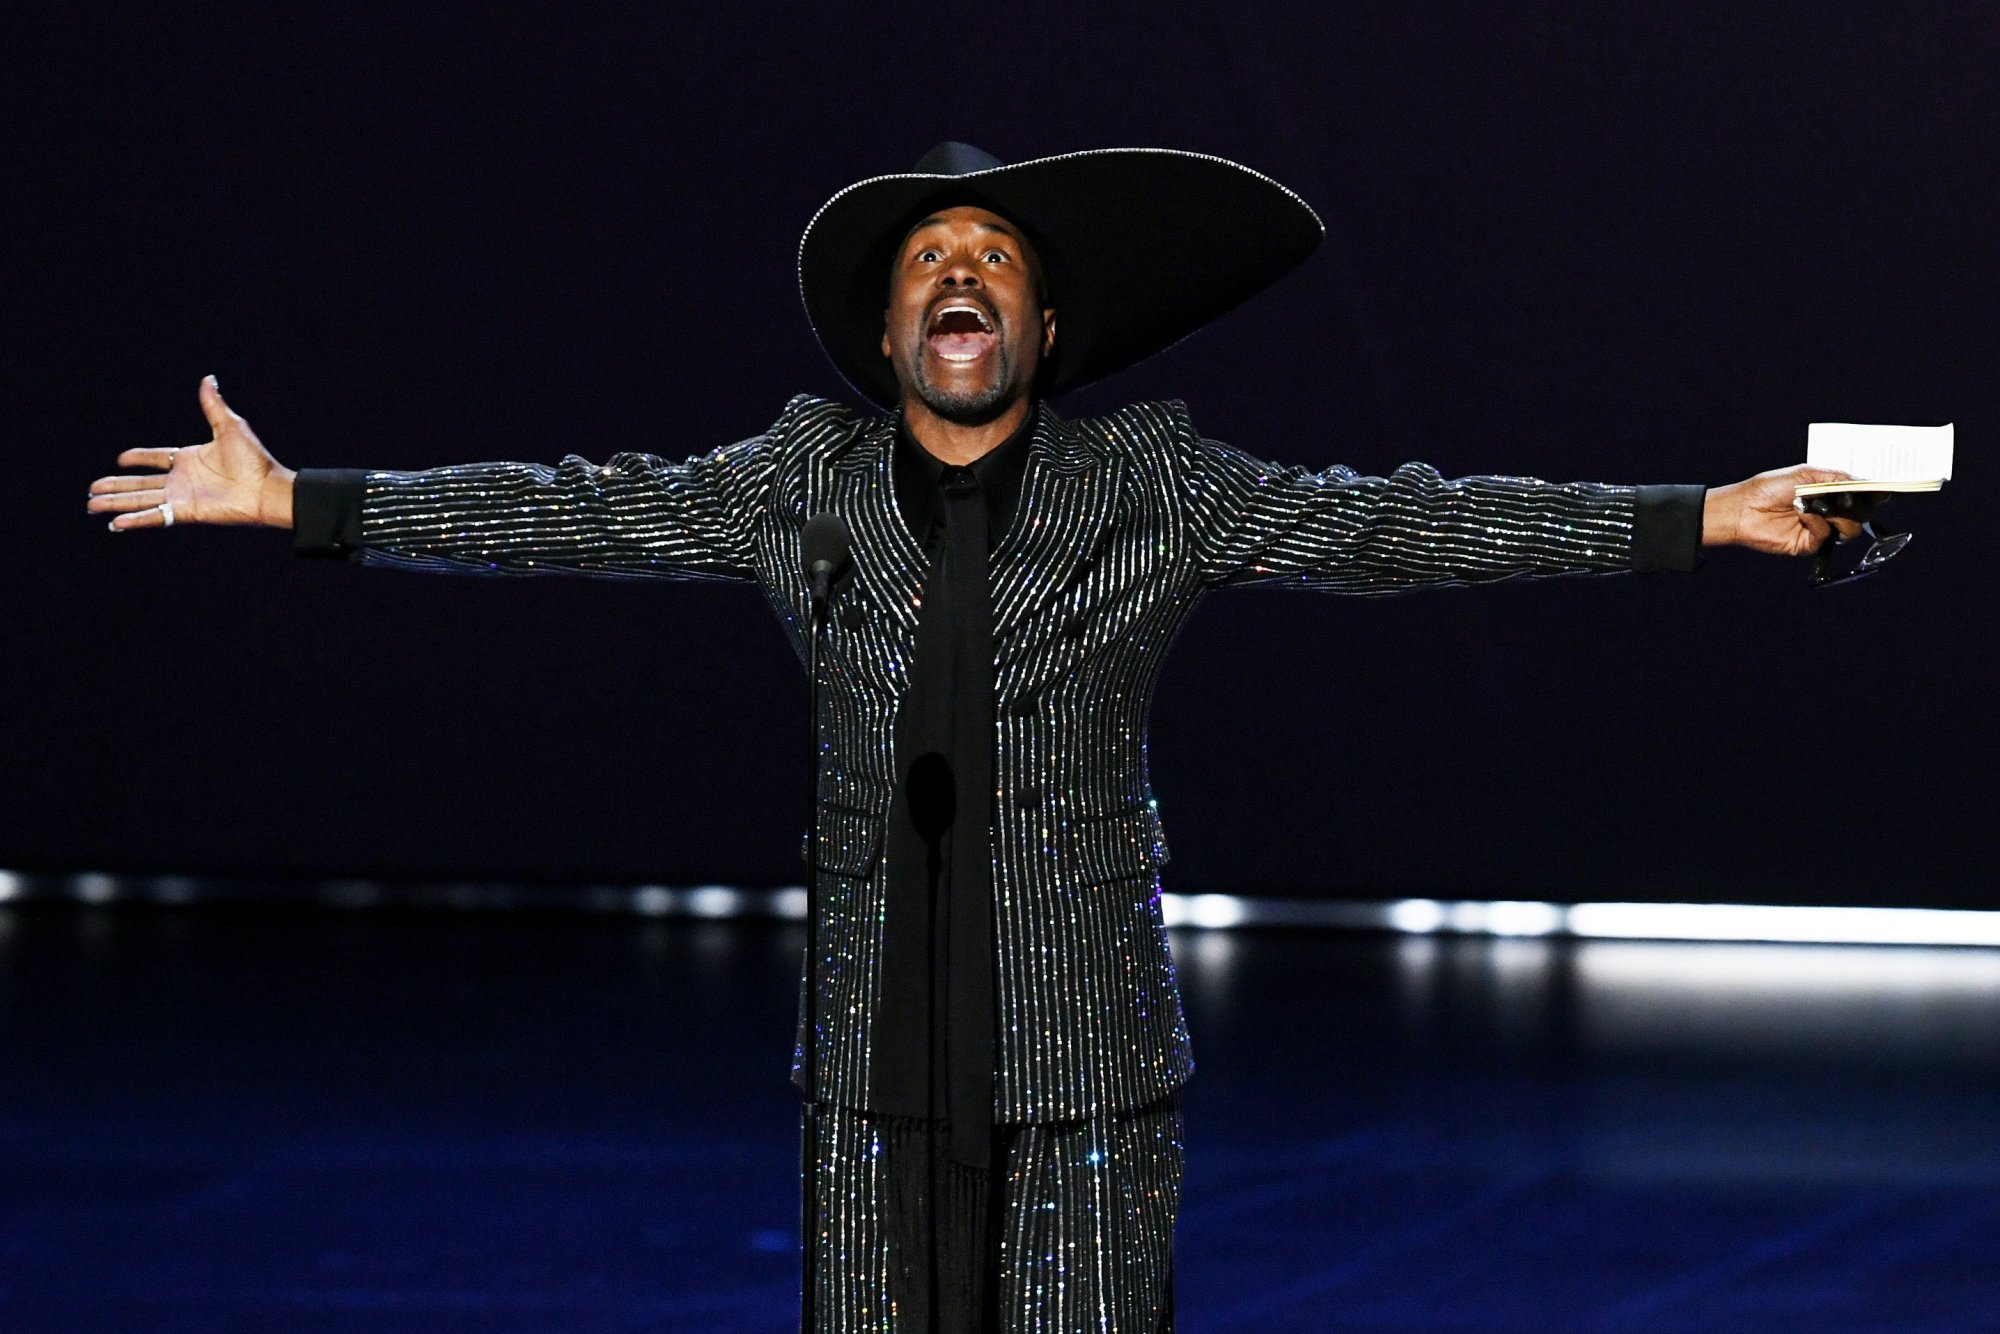 """Billy Porter became the first openly gay man to win the Emmy for outstanding lead actor in a drama series category for his role on """"Pose."""""""